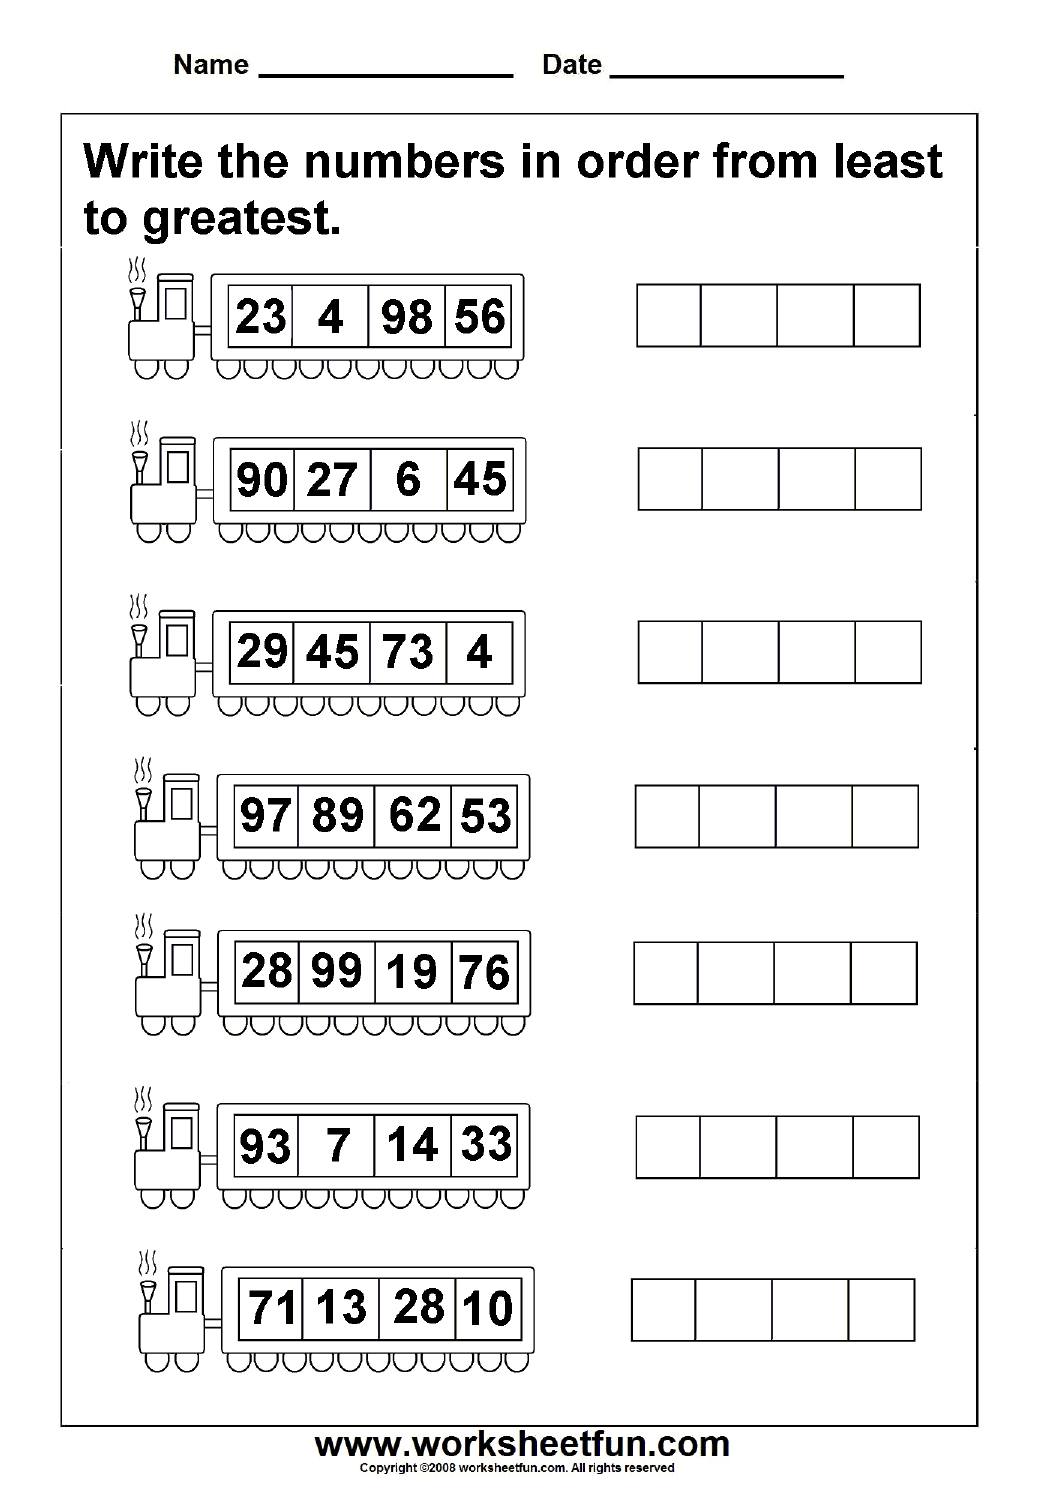 medium resolution of Least to greatest numbers – 4 Worksheets   First grade math worksheets